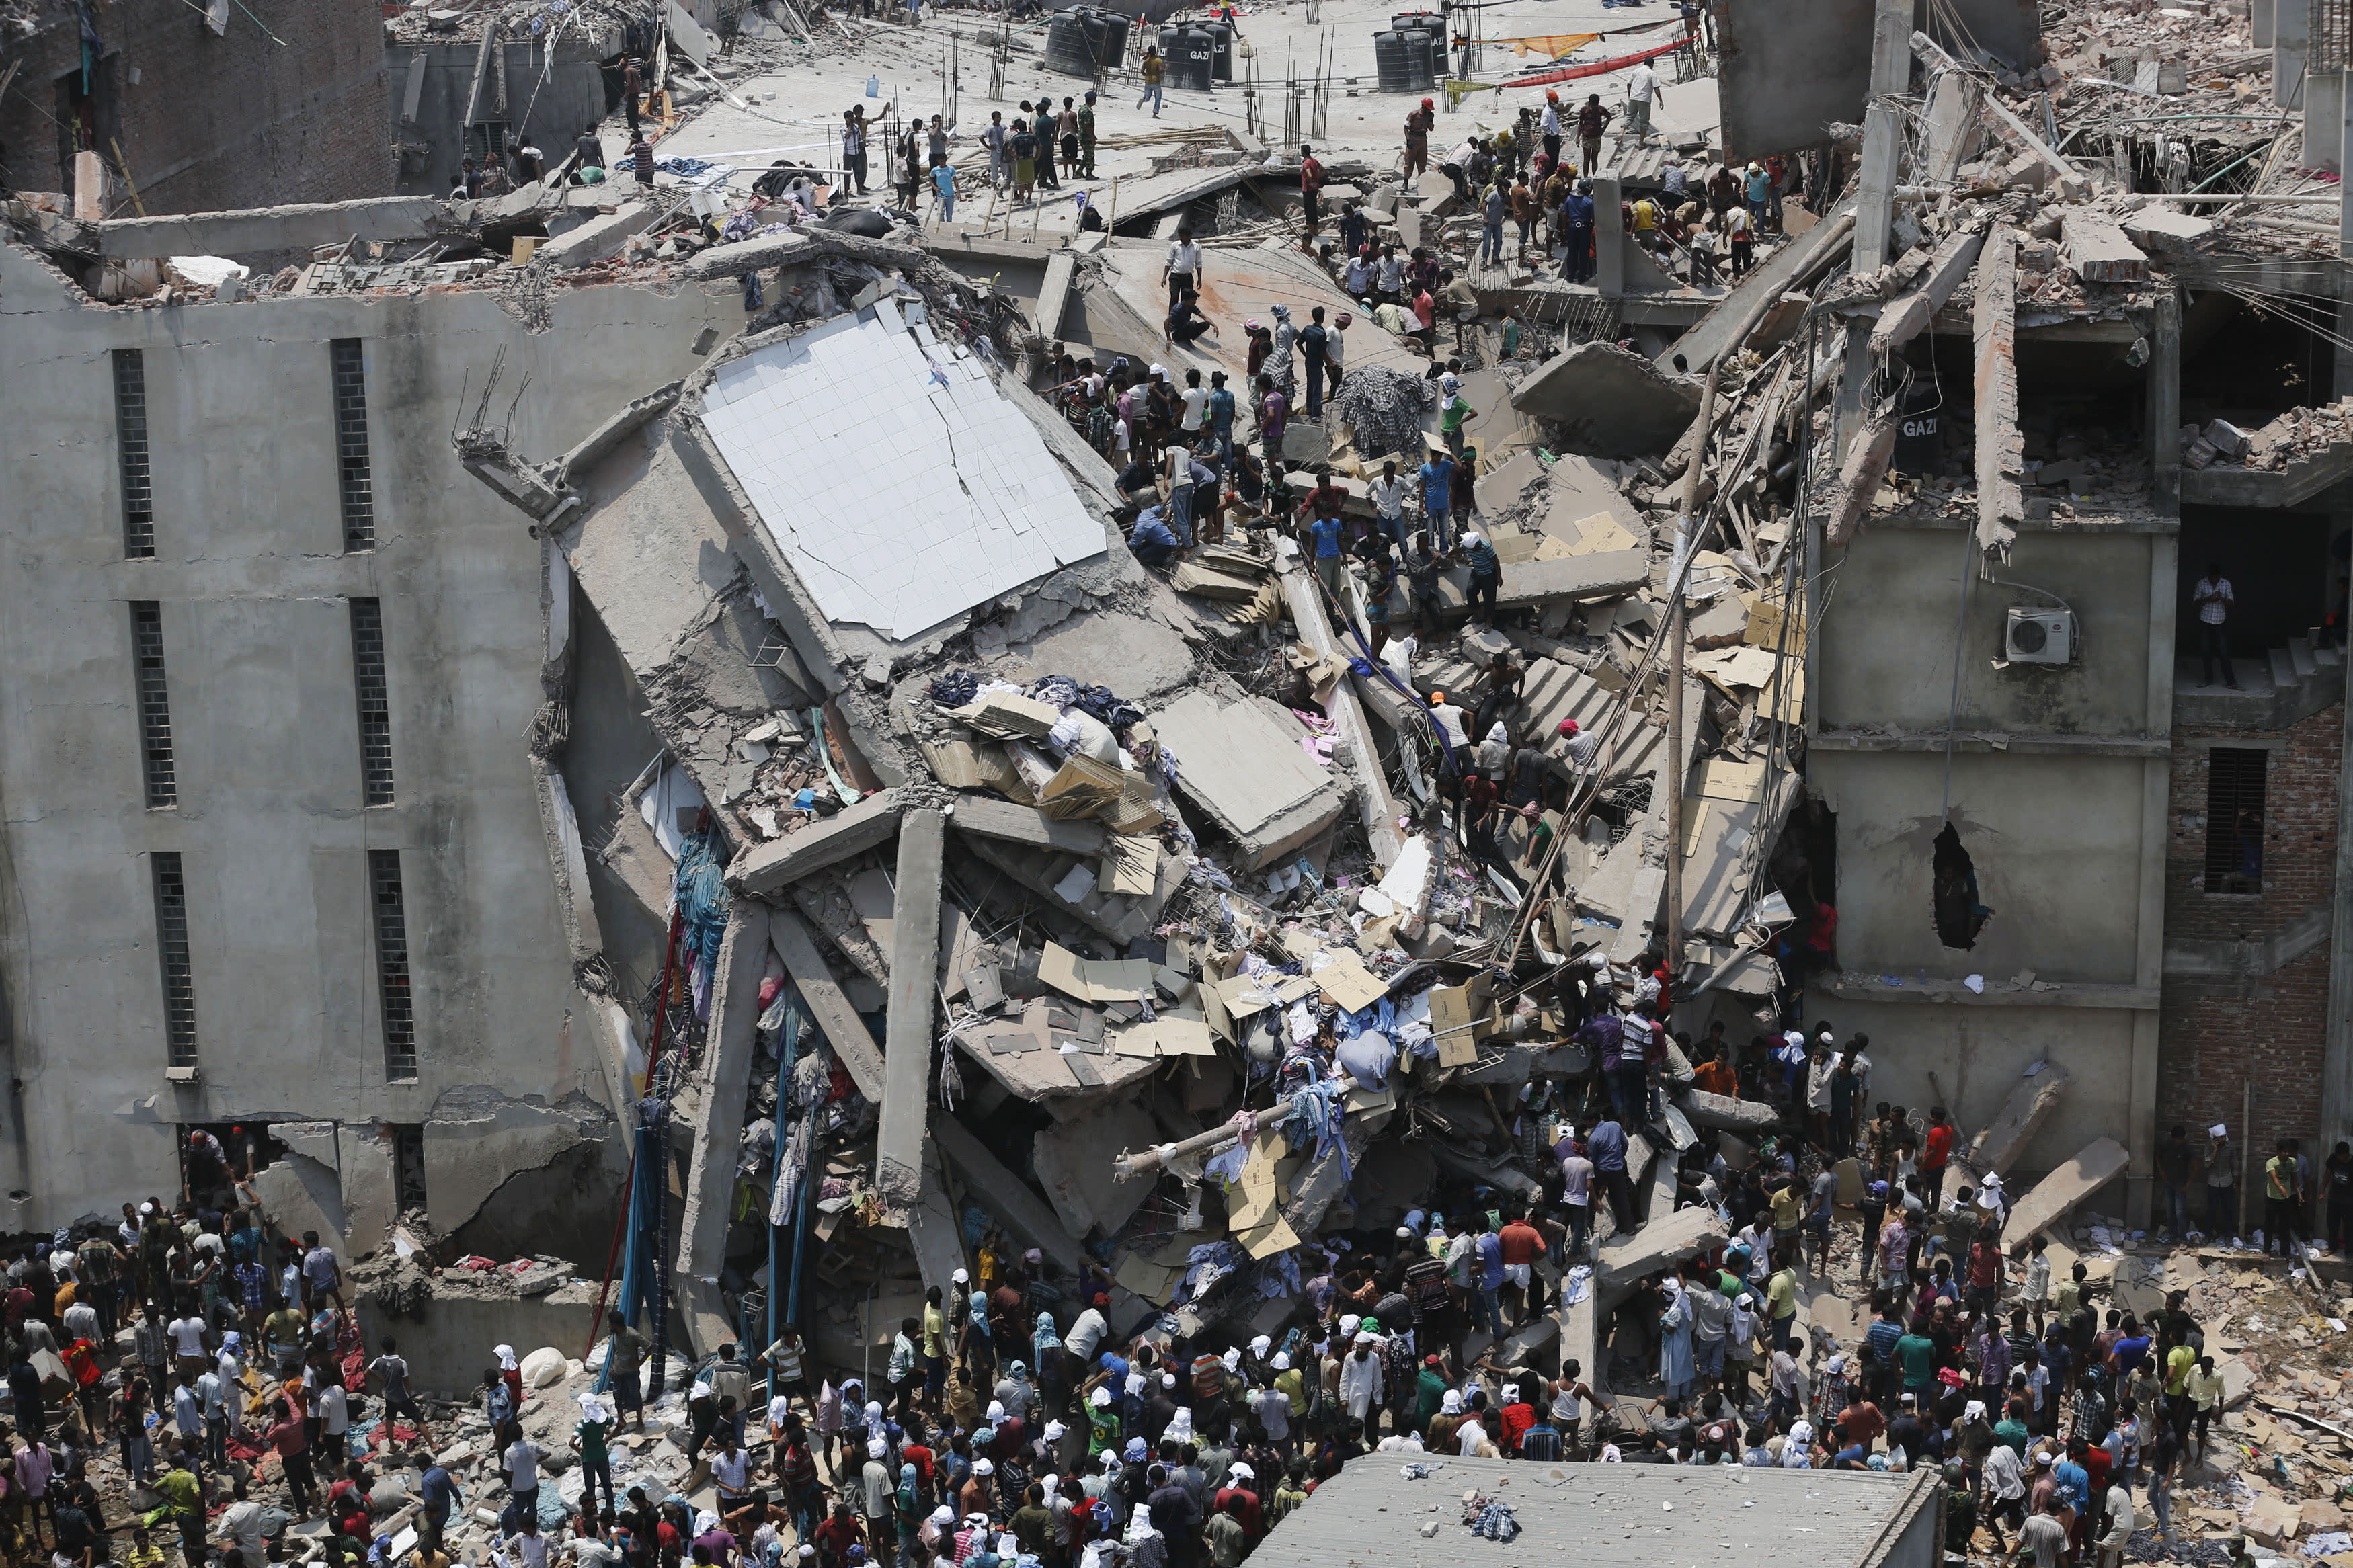 Death Toll in Bangladesh Building Collapse Climbs to 160